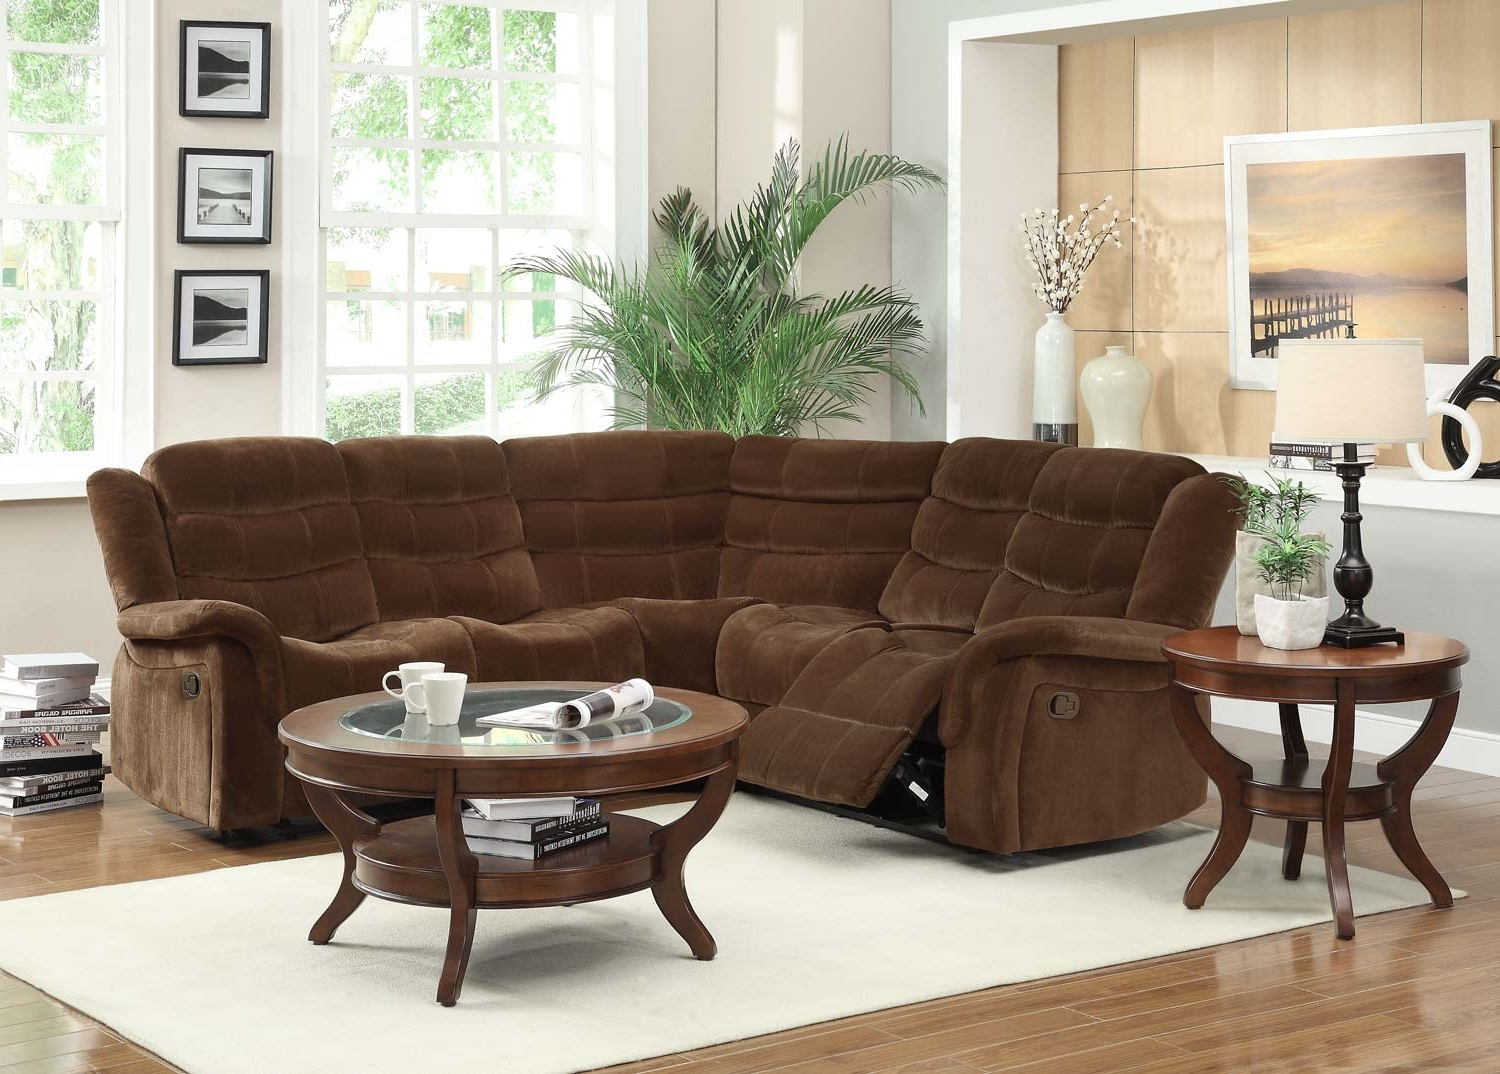 2018 Chocolate Brown Sectional Sofas In Homelegance Norton Reclining Sectional Sofa Set – Chocolate (View 14 of 15)